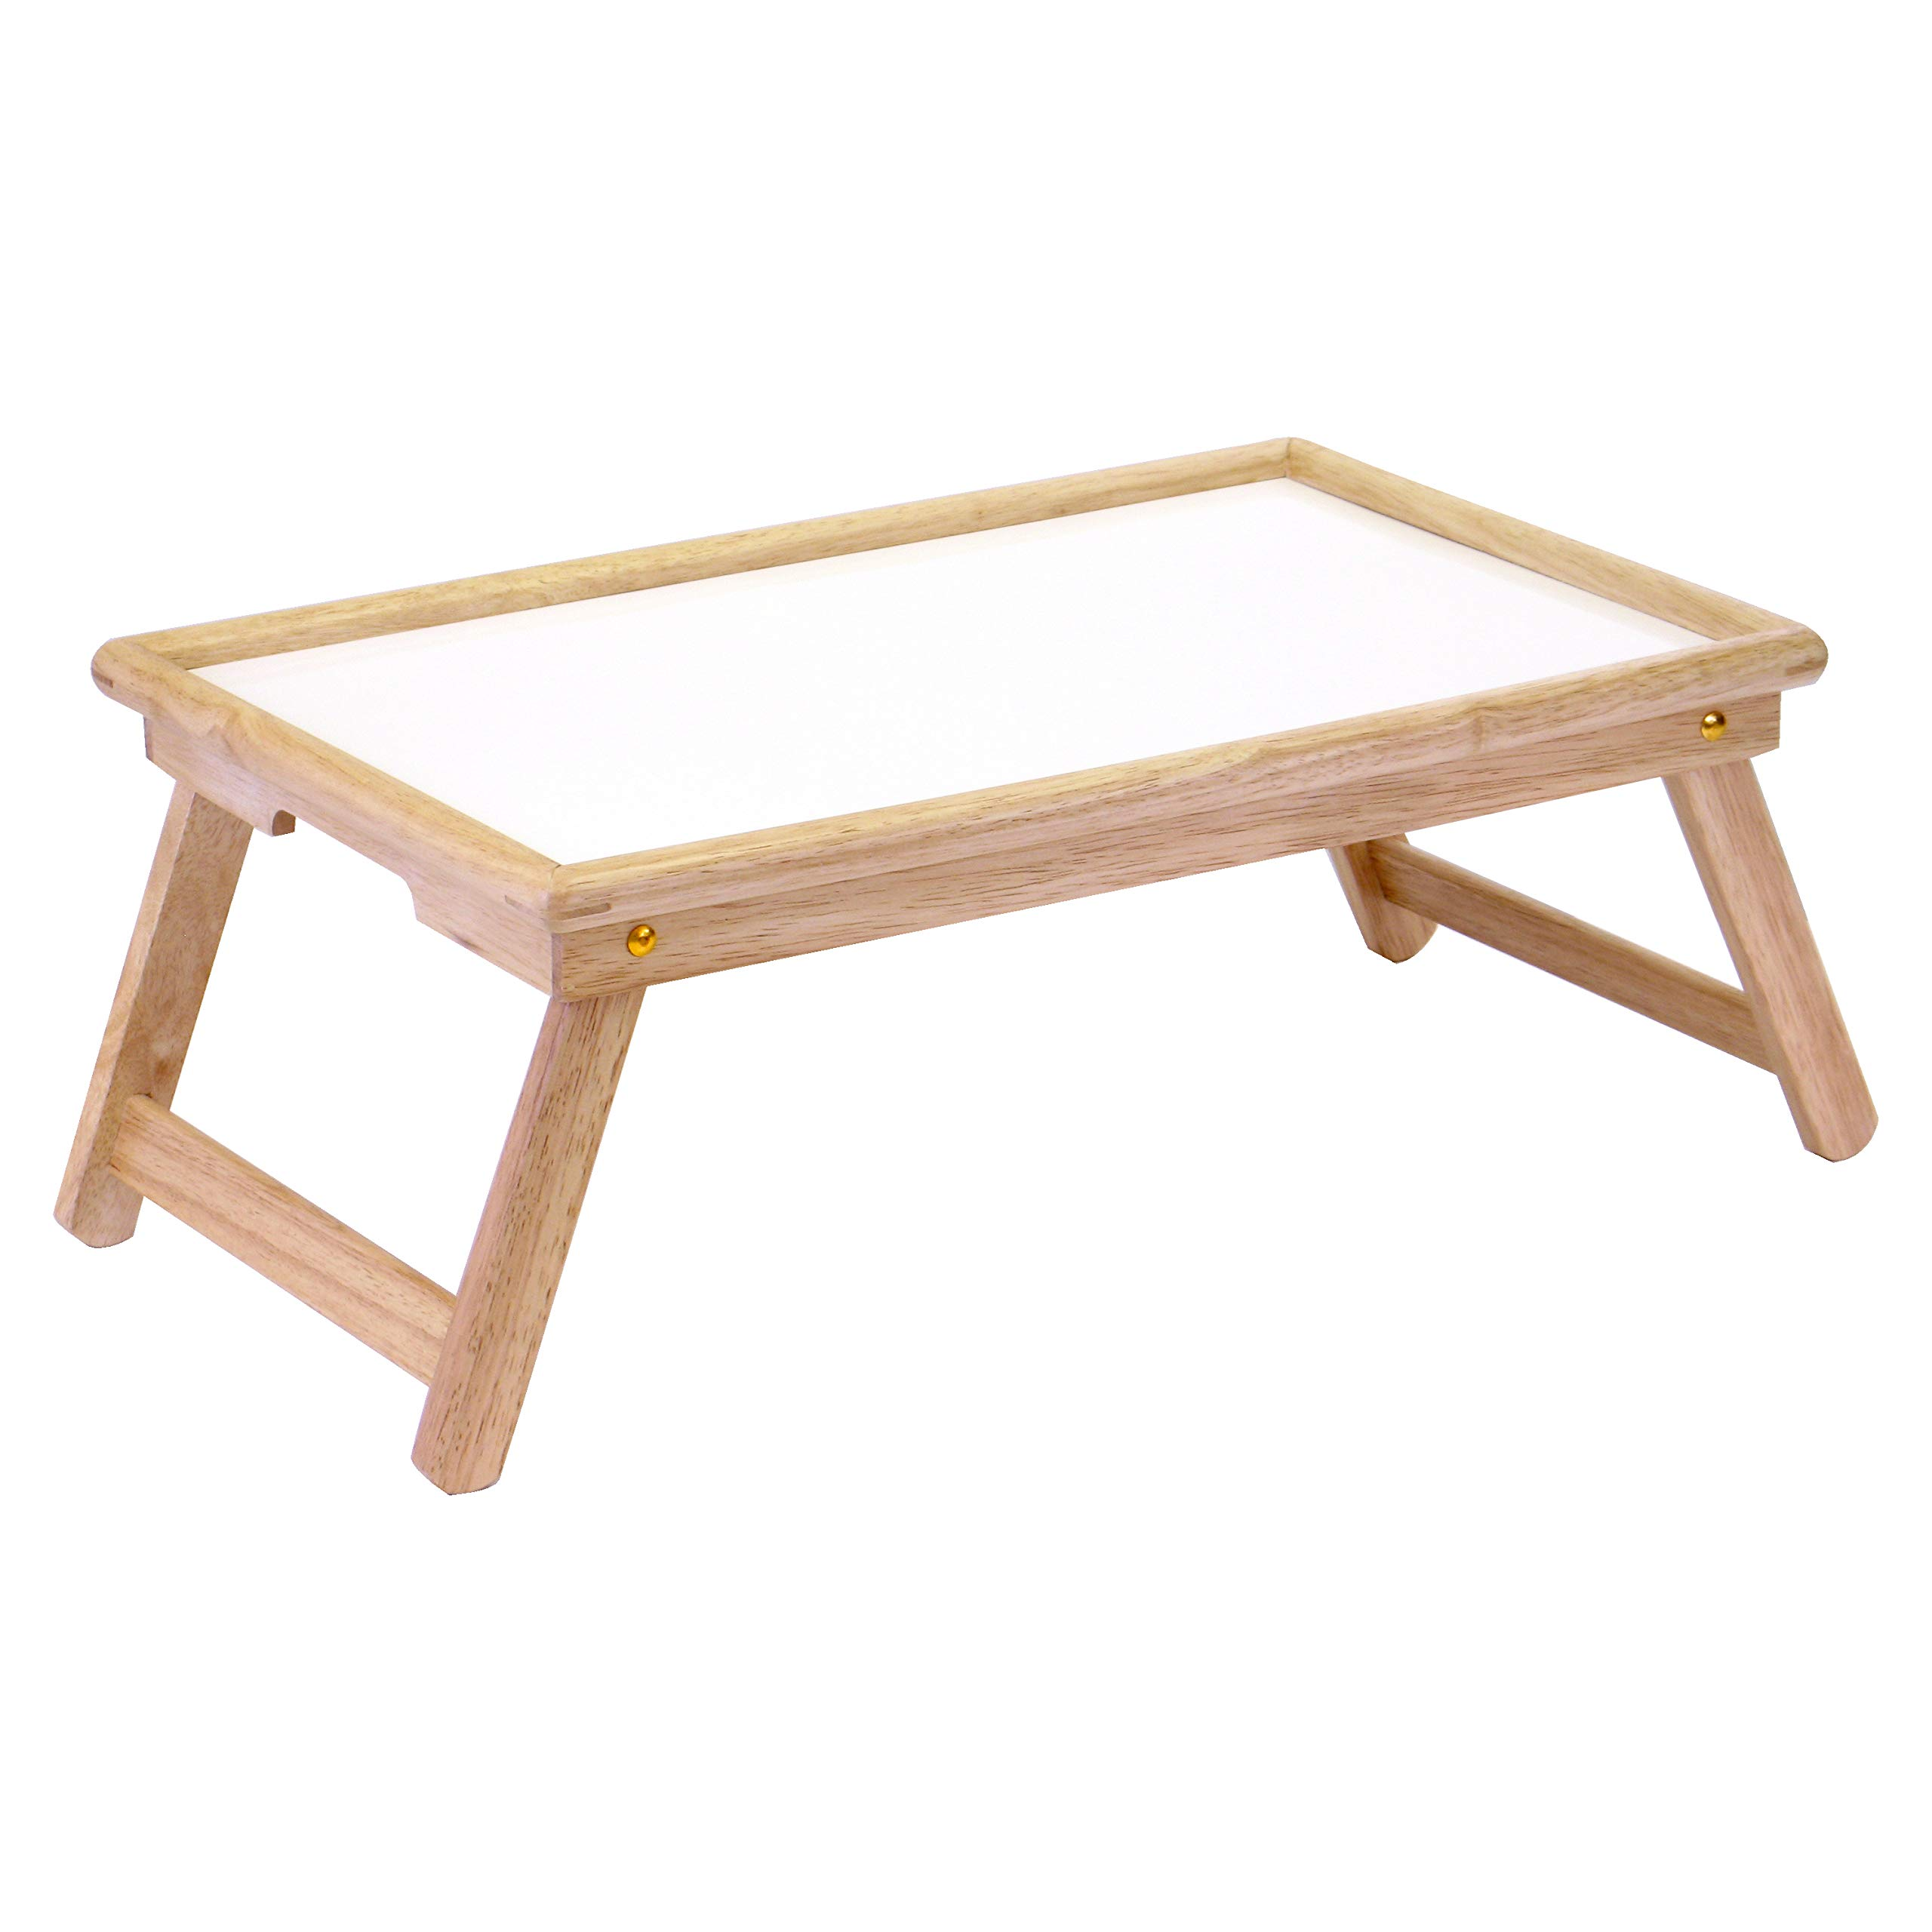 Winsome Wood 98721 Ventura Bed Tray, Natural/wht by Winsome Wood